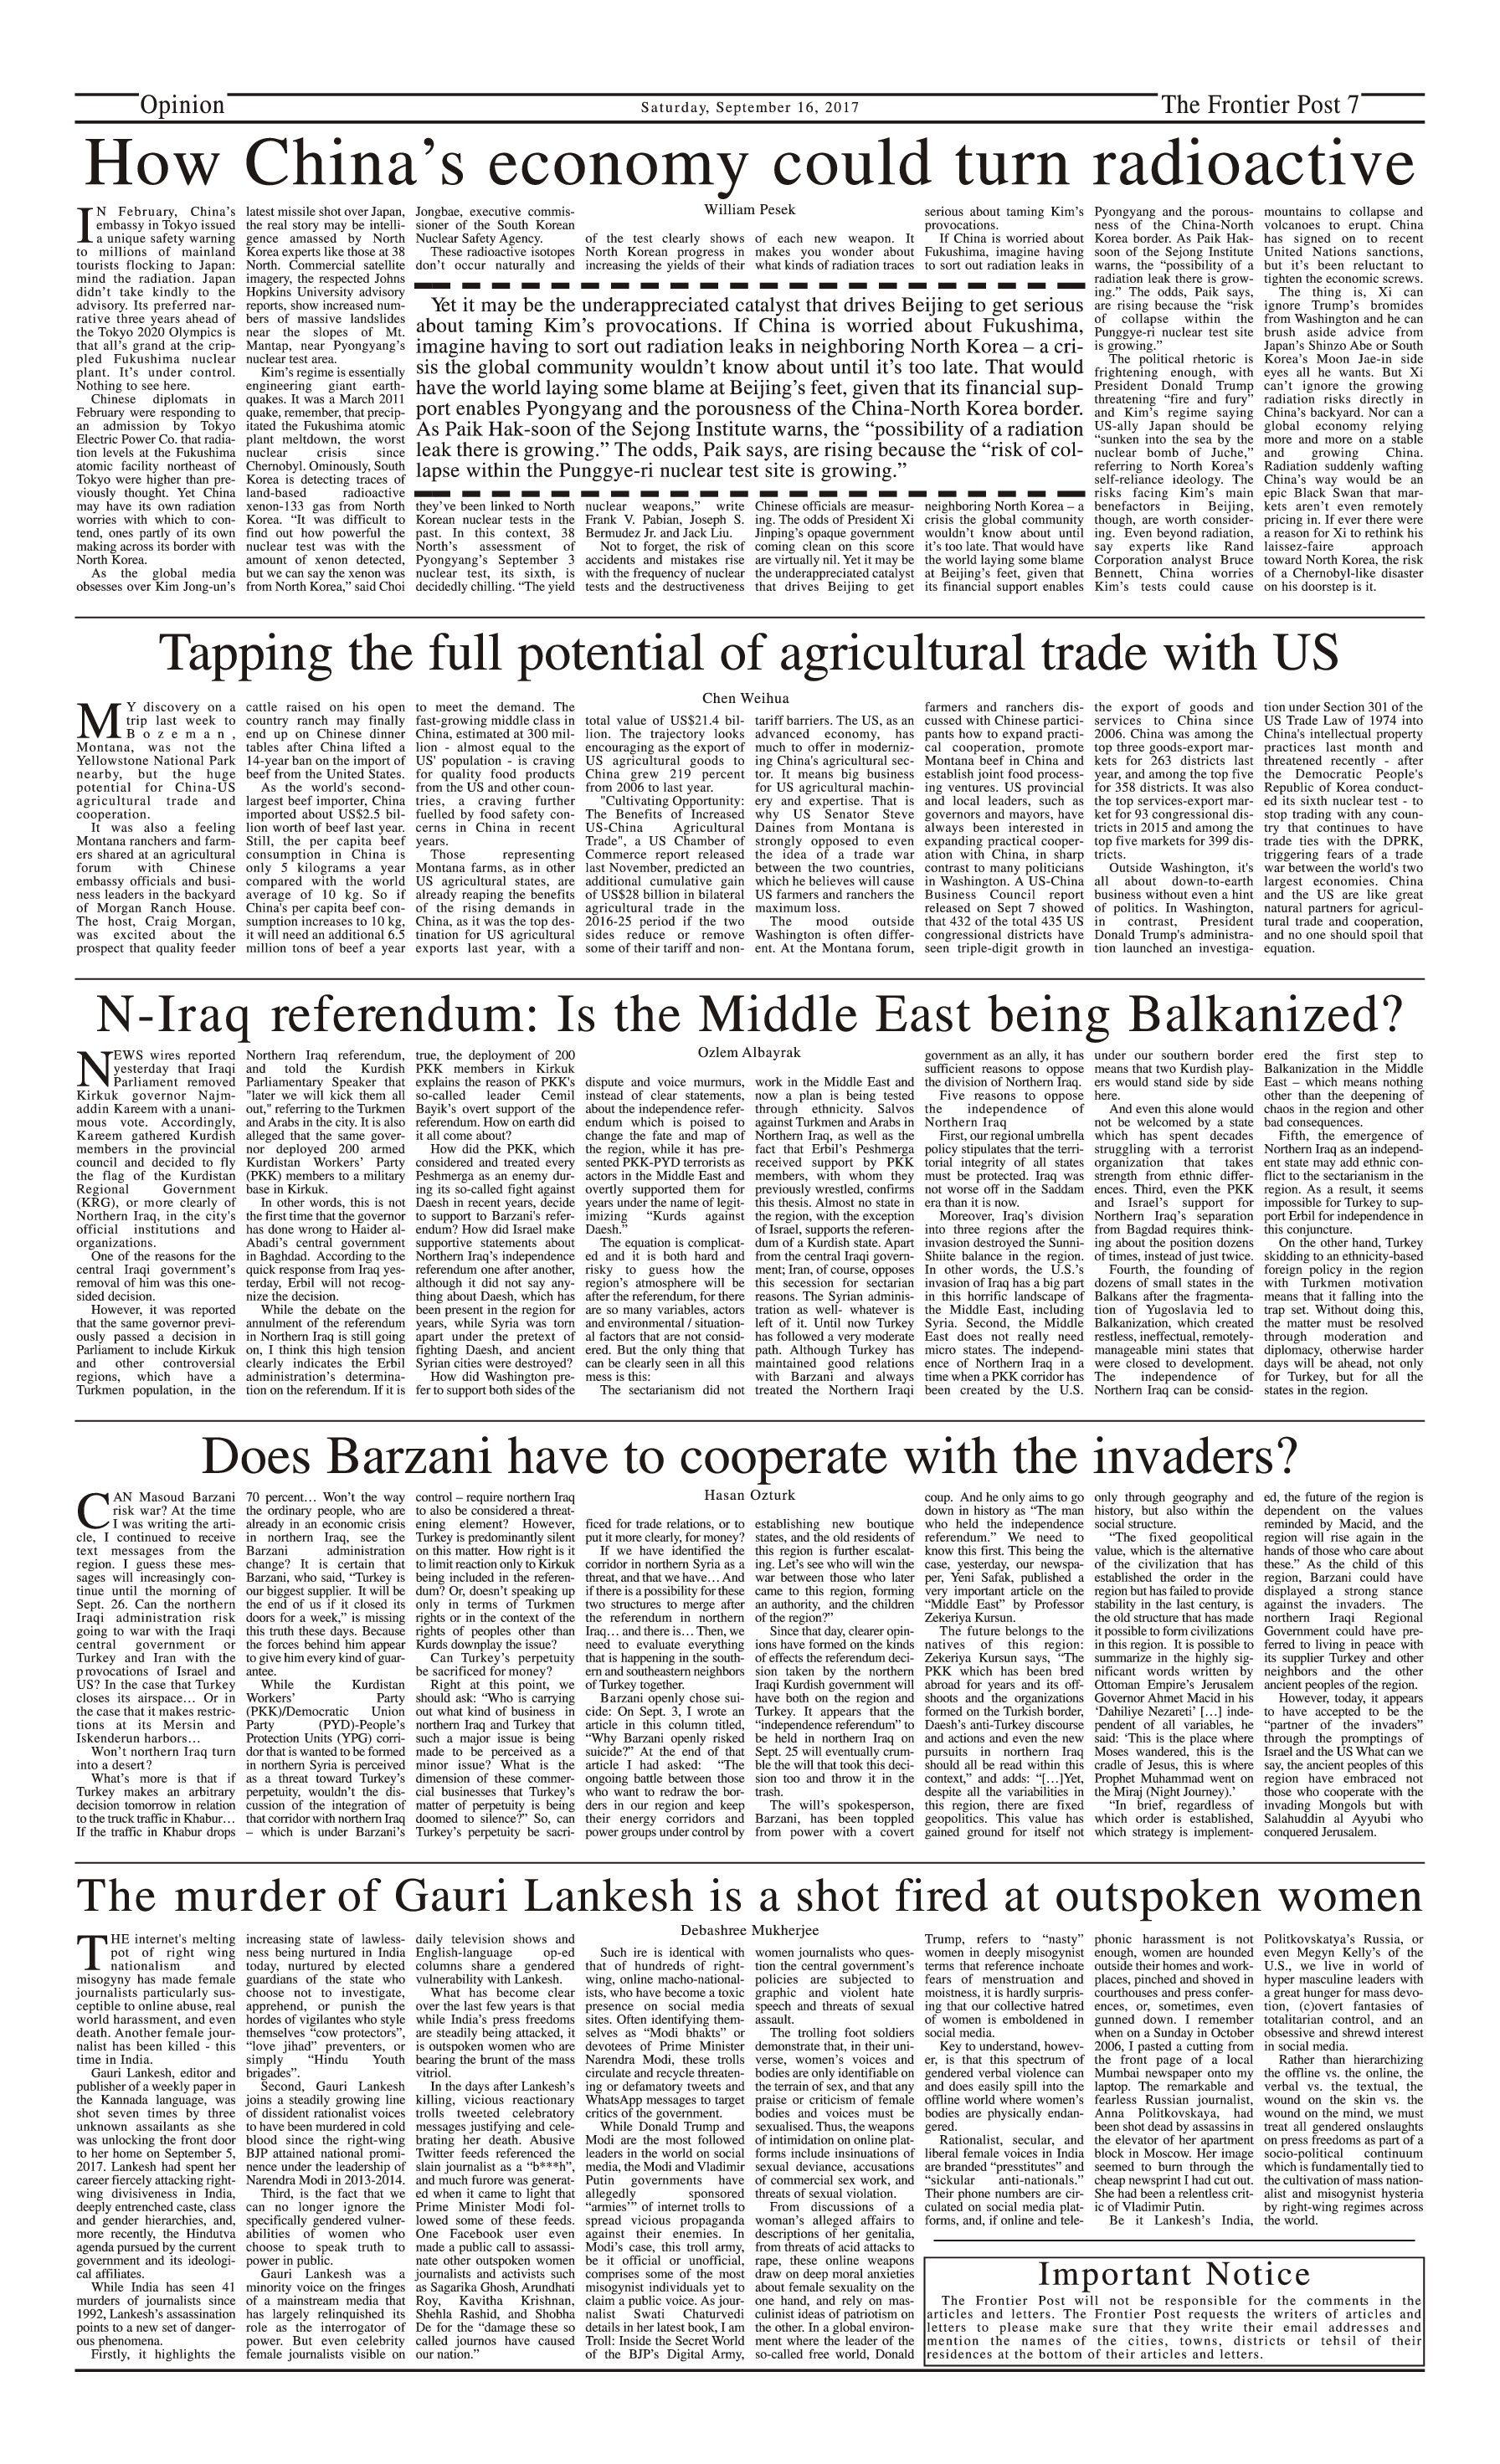 Opinion Page 16-09